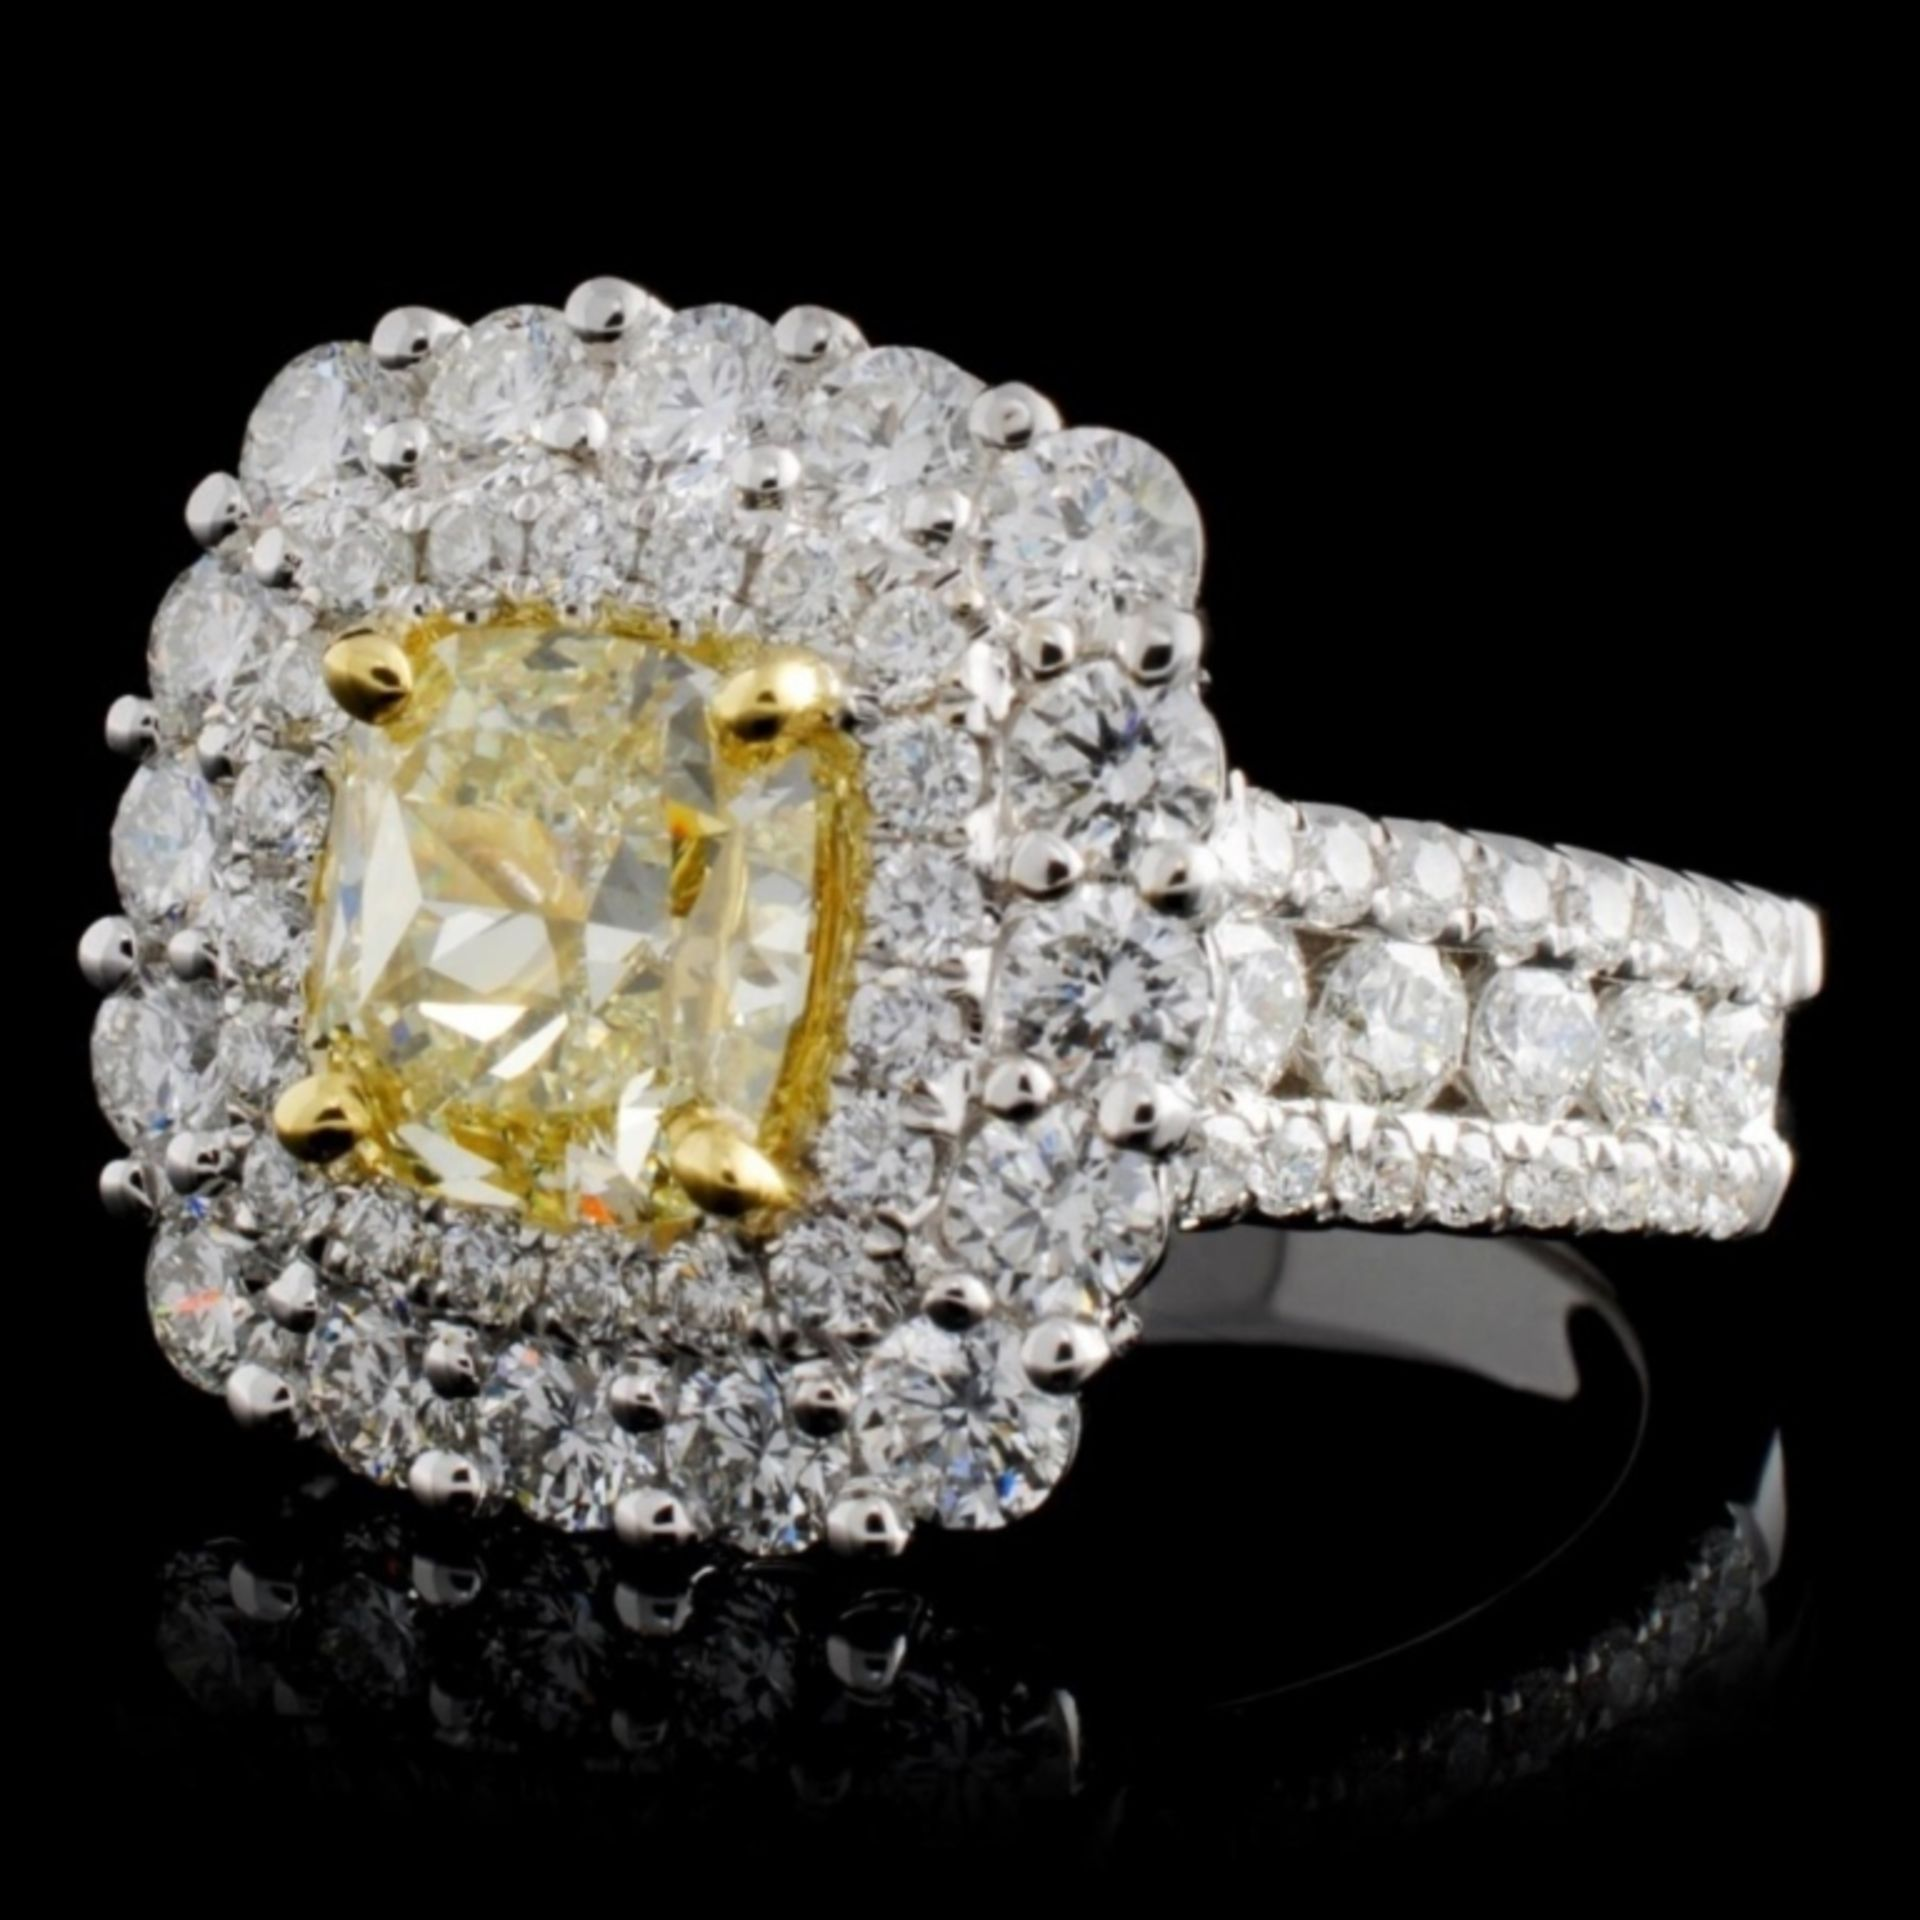 18K White Gold 3.92ctw Fancy Color Diamond Ring - Image 2 of 4